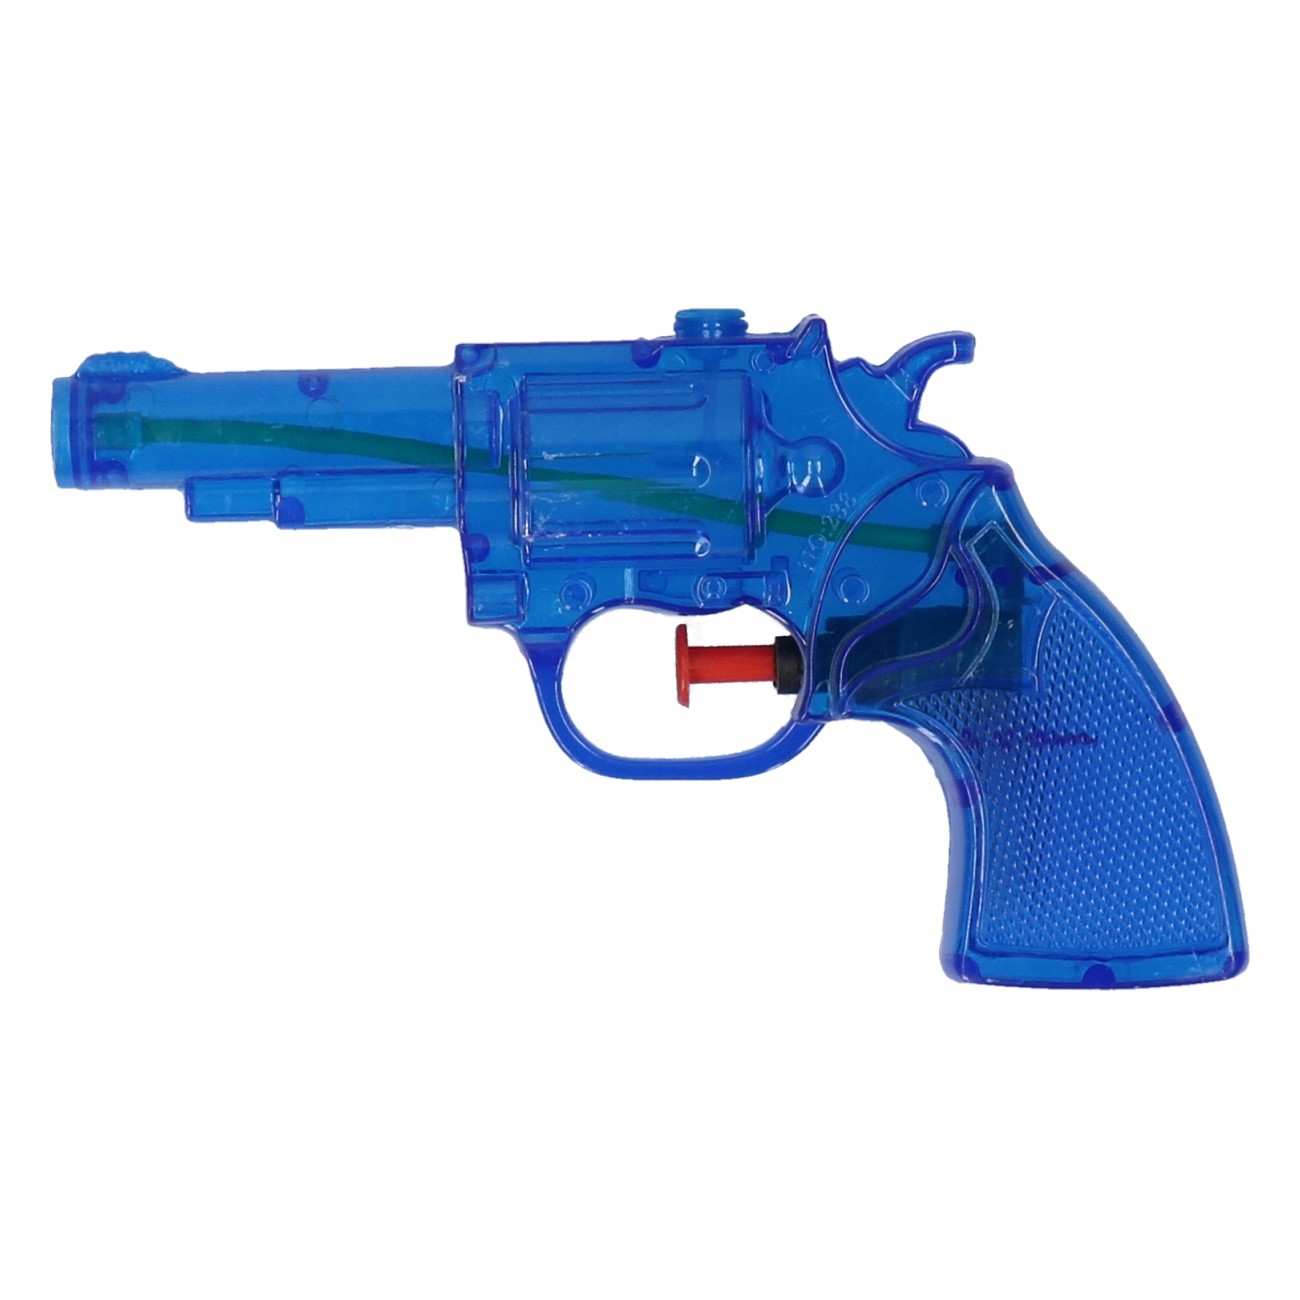 Waterpistool BLAUW